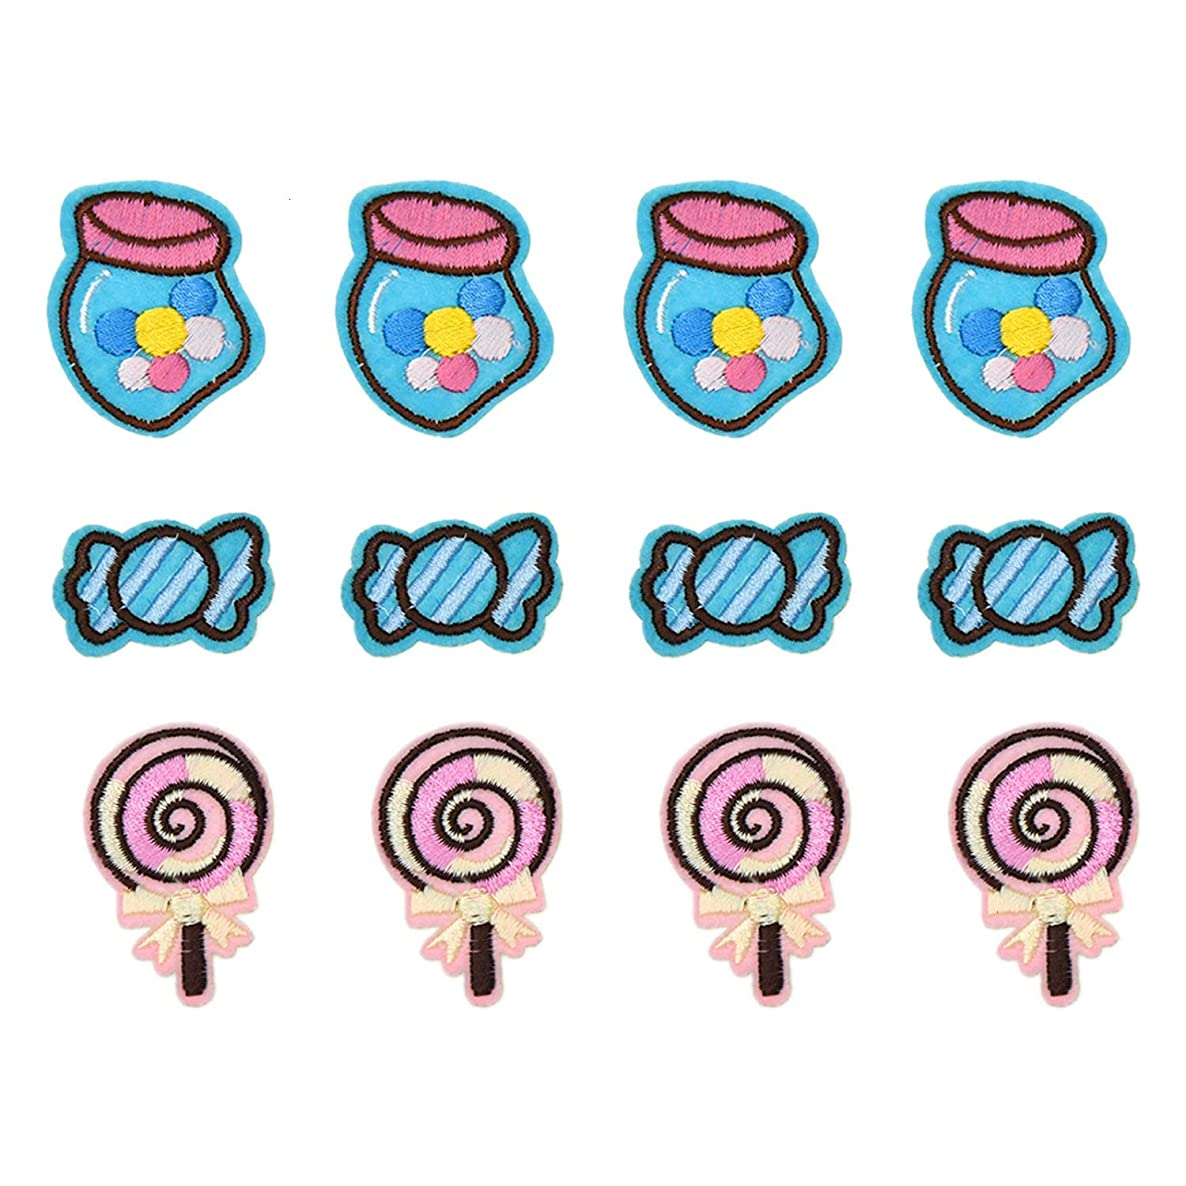 Monrocco 12Pcs Candy Sweet Lolly Patch Iron On Patch Fabric Applique Motif Decal for Jackets Clothes Bags